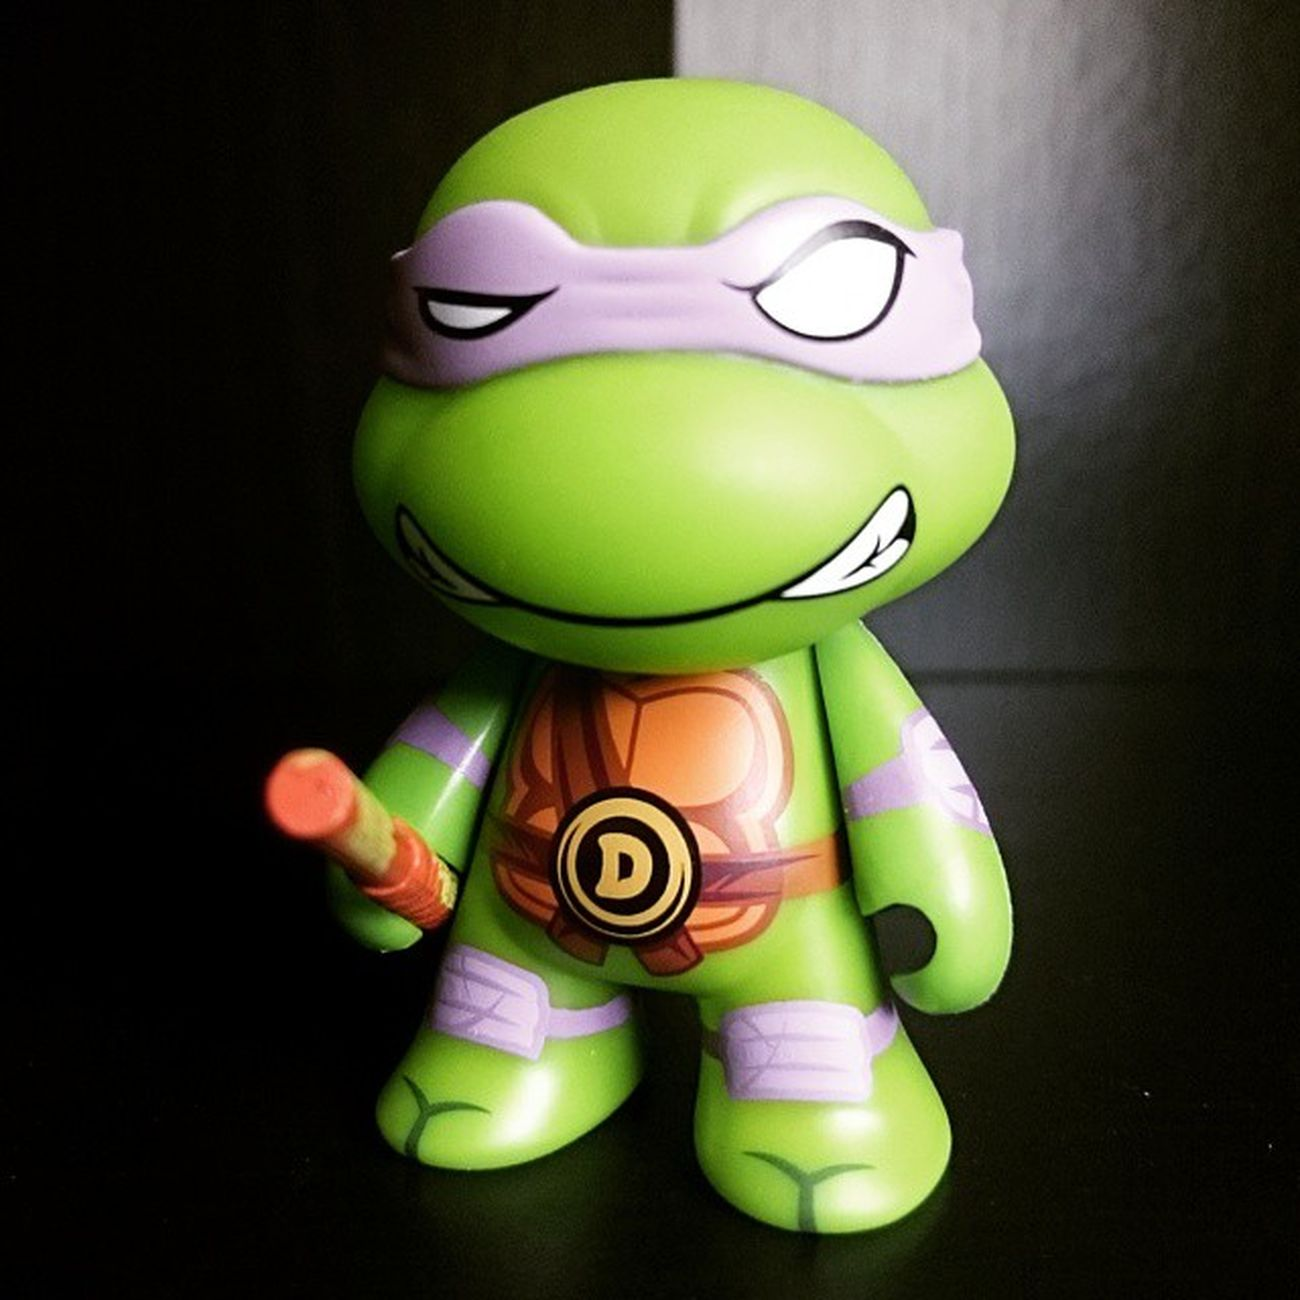 Tmnt Teenagemutantninjaturtles Donatello Kidrobot